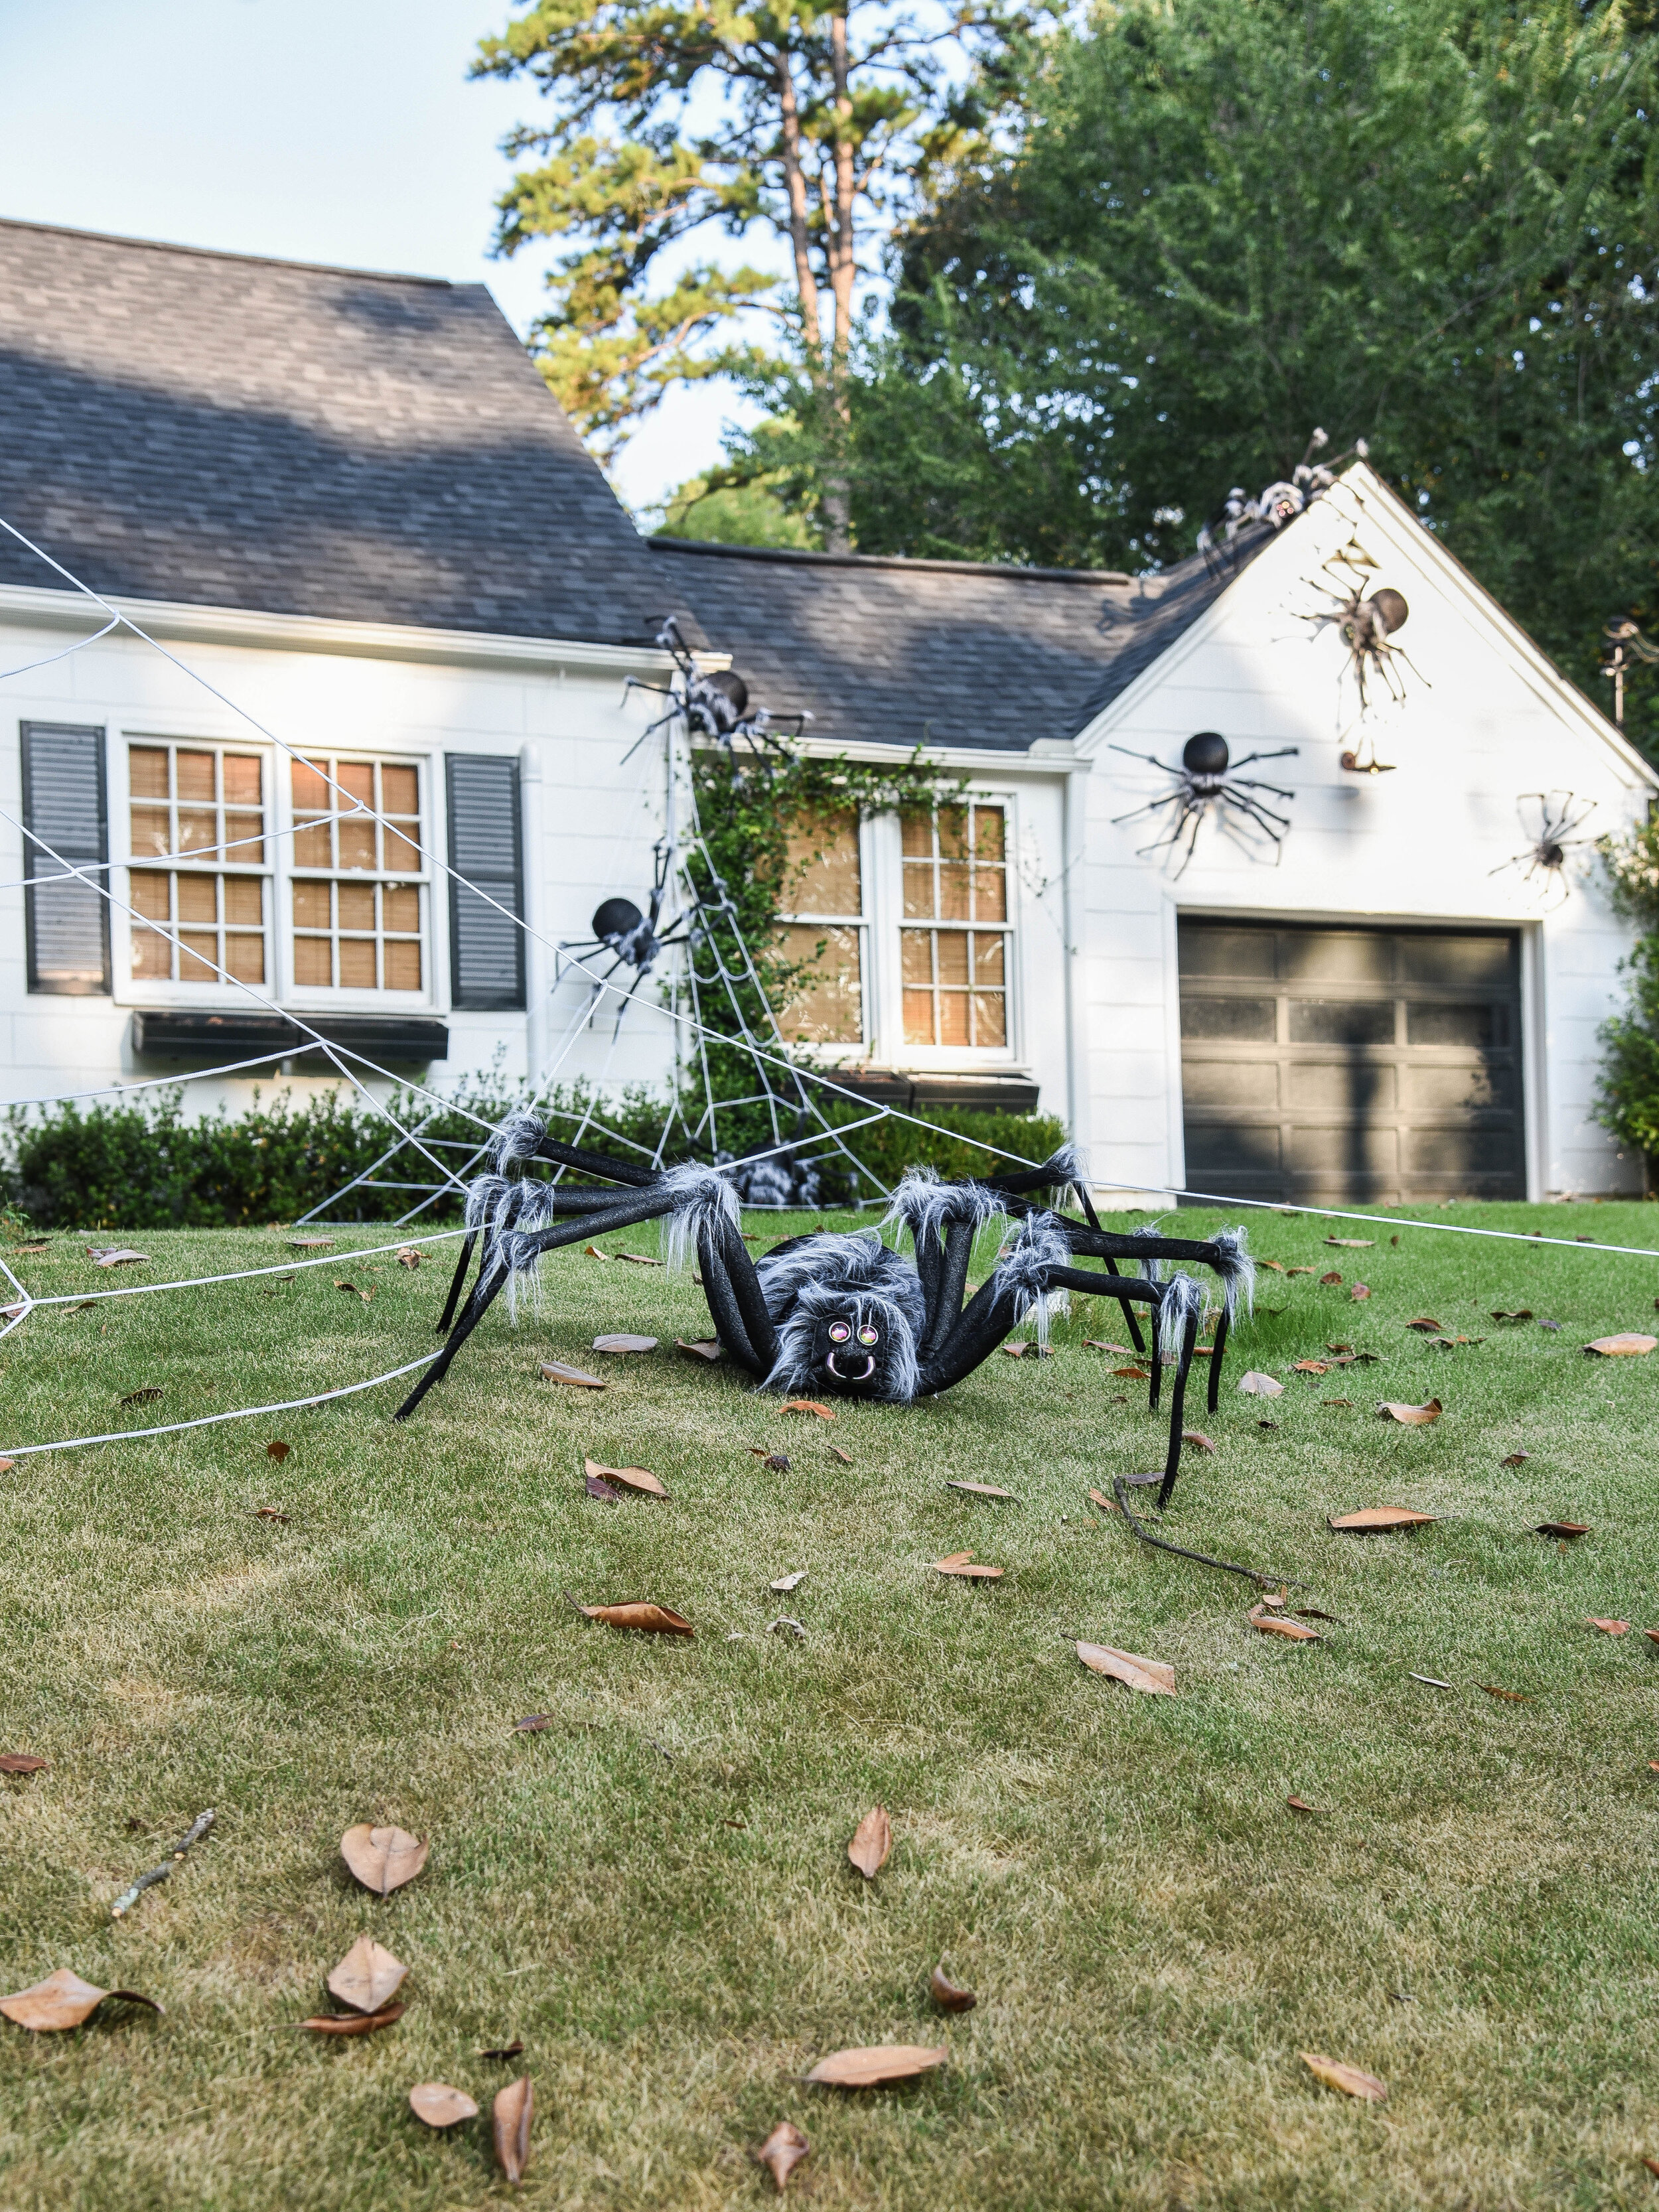 Outdoor Halloween Decorations Spooky Kid Friendly Spiders Iron Twine